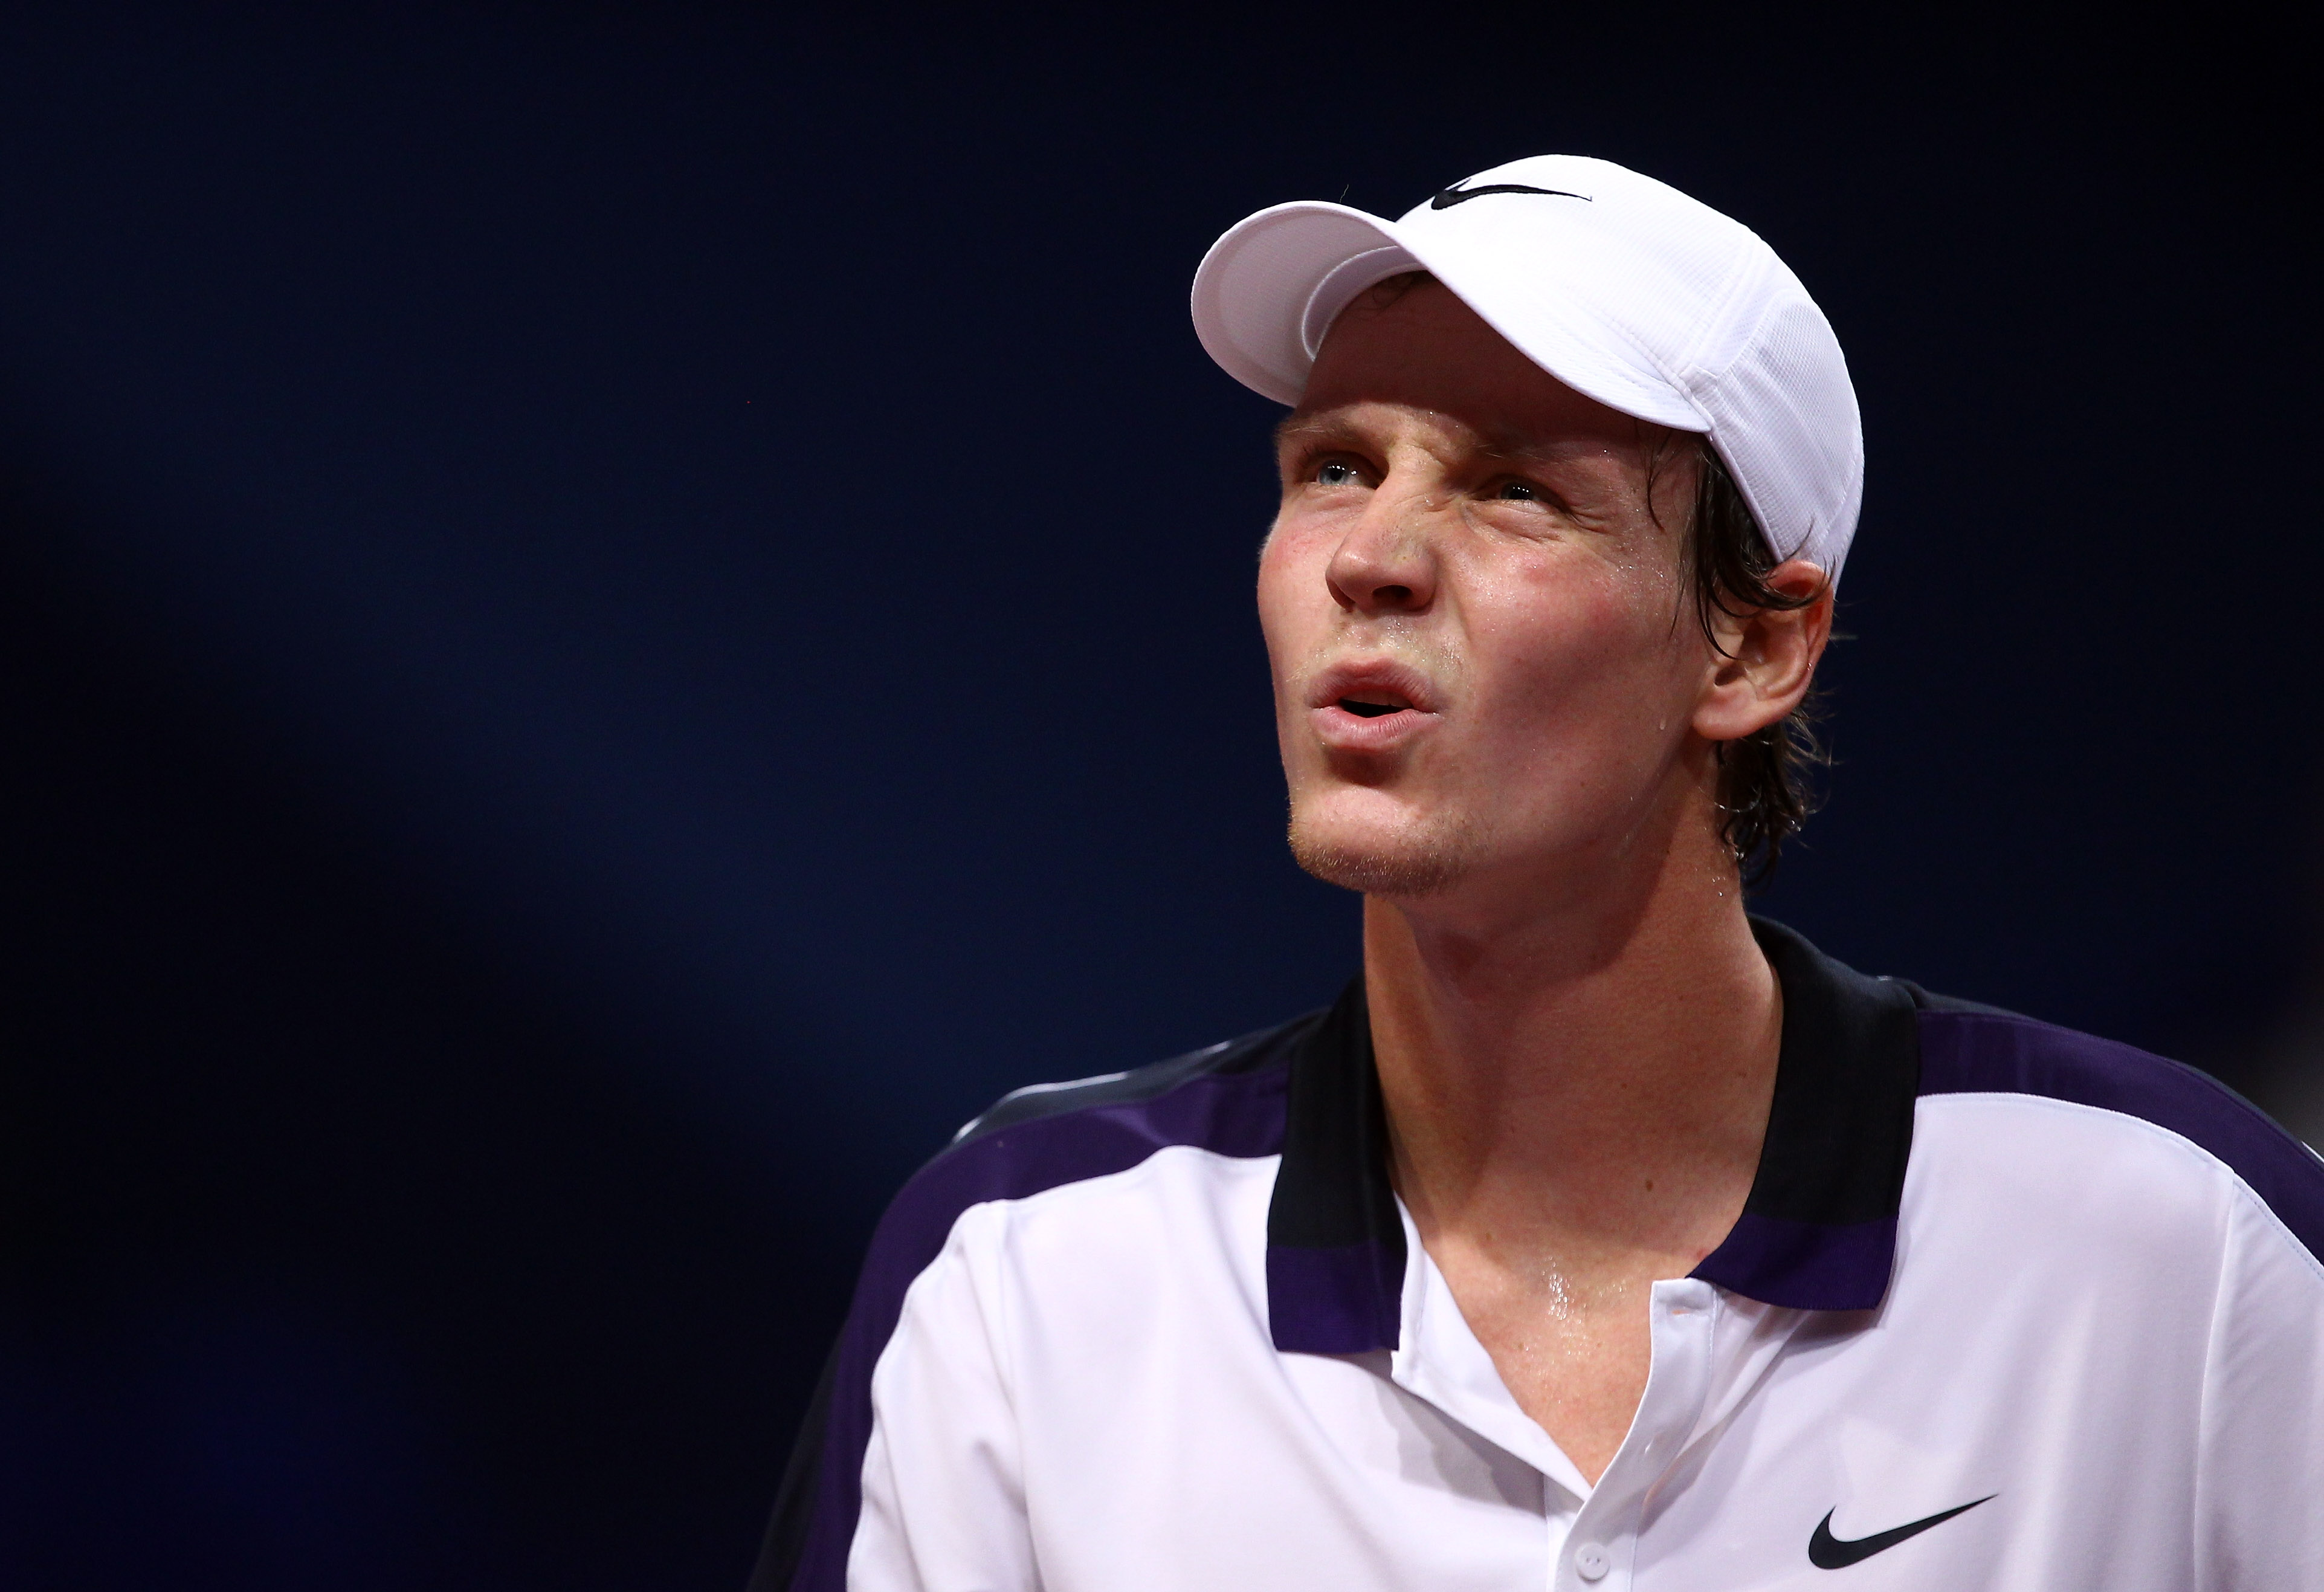 BASEL, SWITZERLAND - NOVEMBER 03:  Tomas Berdych of Czech Republic looks on in his match against Tobias Kamke of Germany during Day Three of the Davidoff Swiss Indoors Tennis at St Jakobshalle on November 3, 2010 in Basel, Switzerland.  (Photo by Julian F